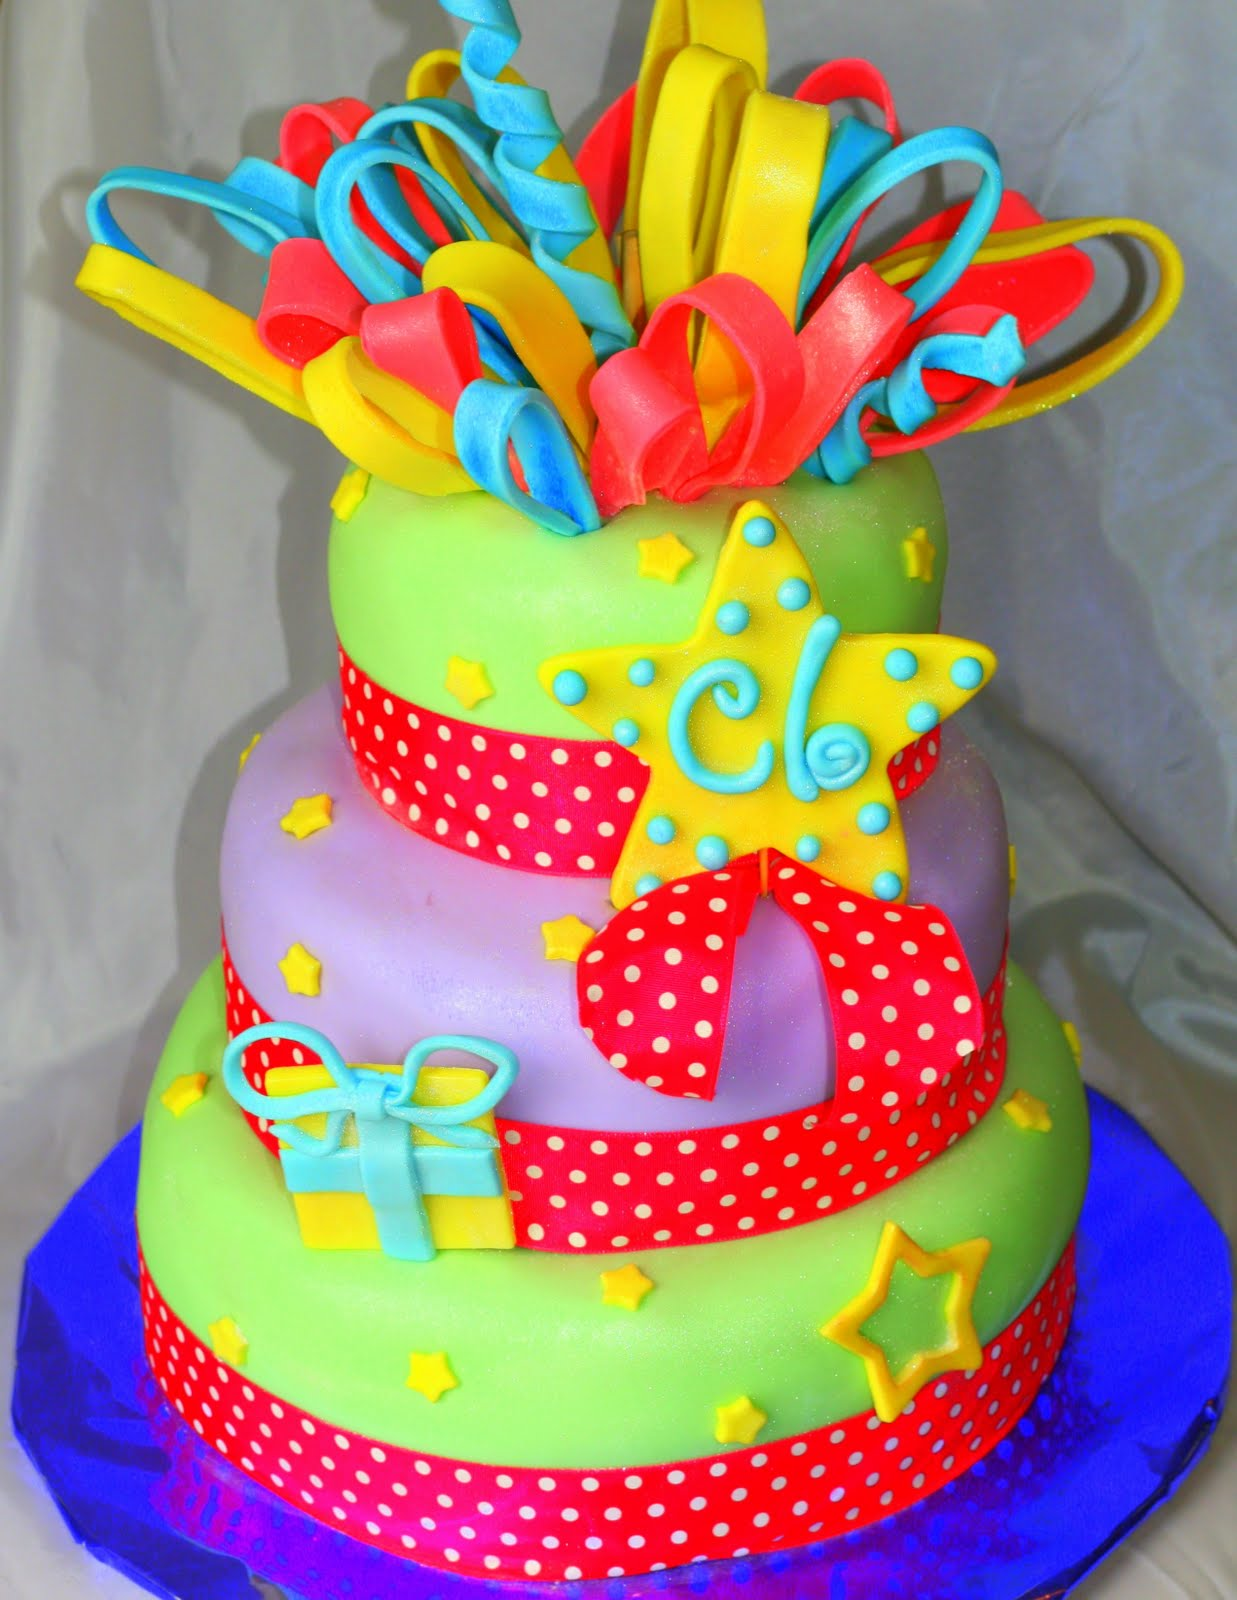 Woodstock Cake Ideas And Designs